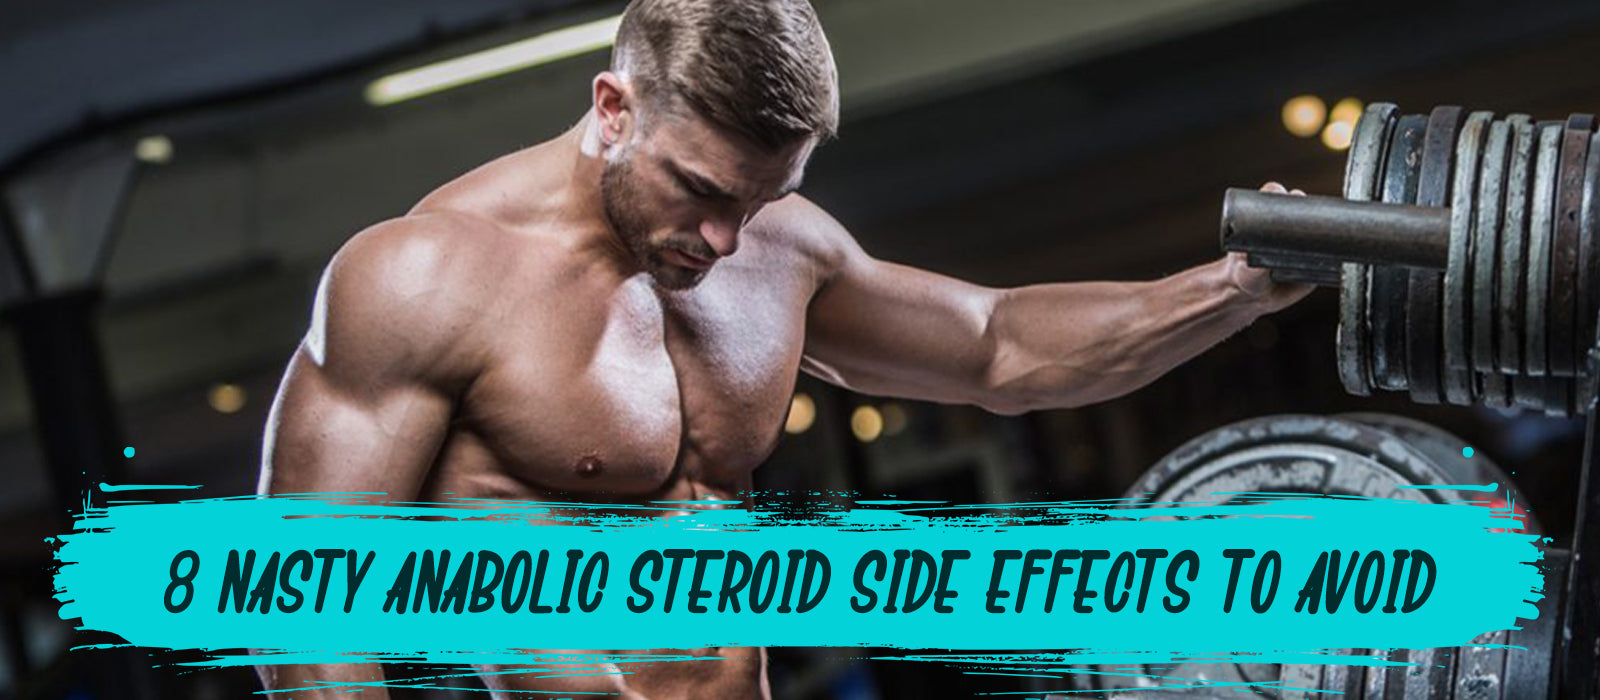 8 Nasty Anabolic Steroid Side Effects To Avoid